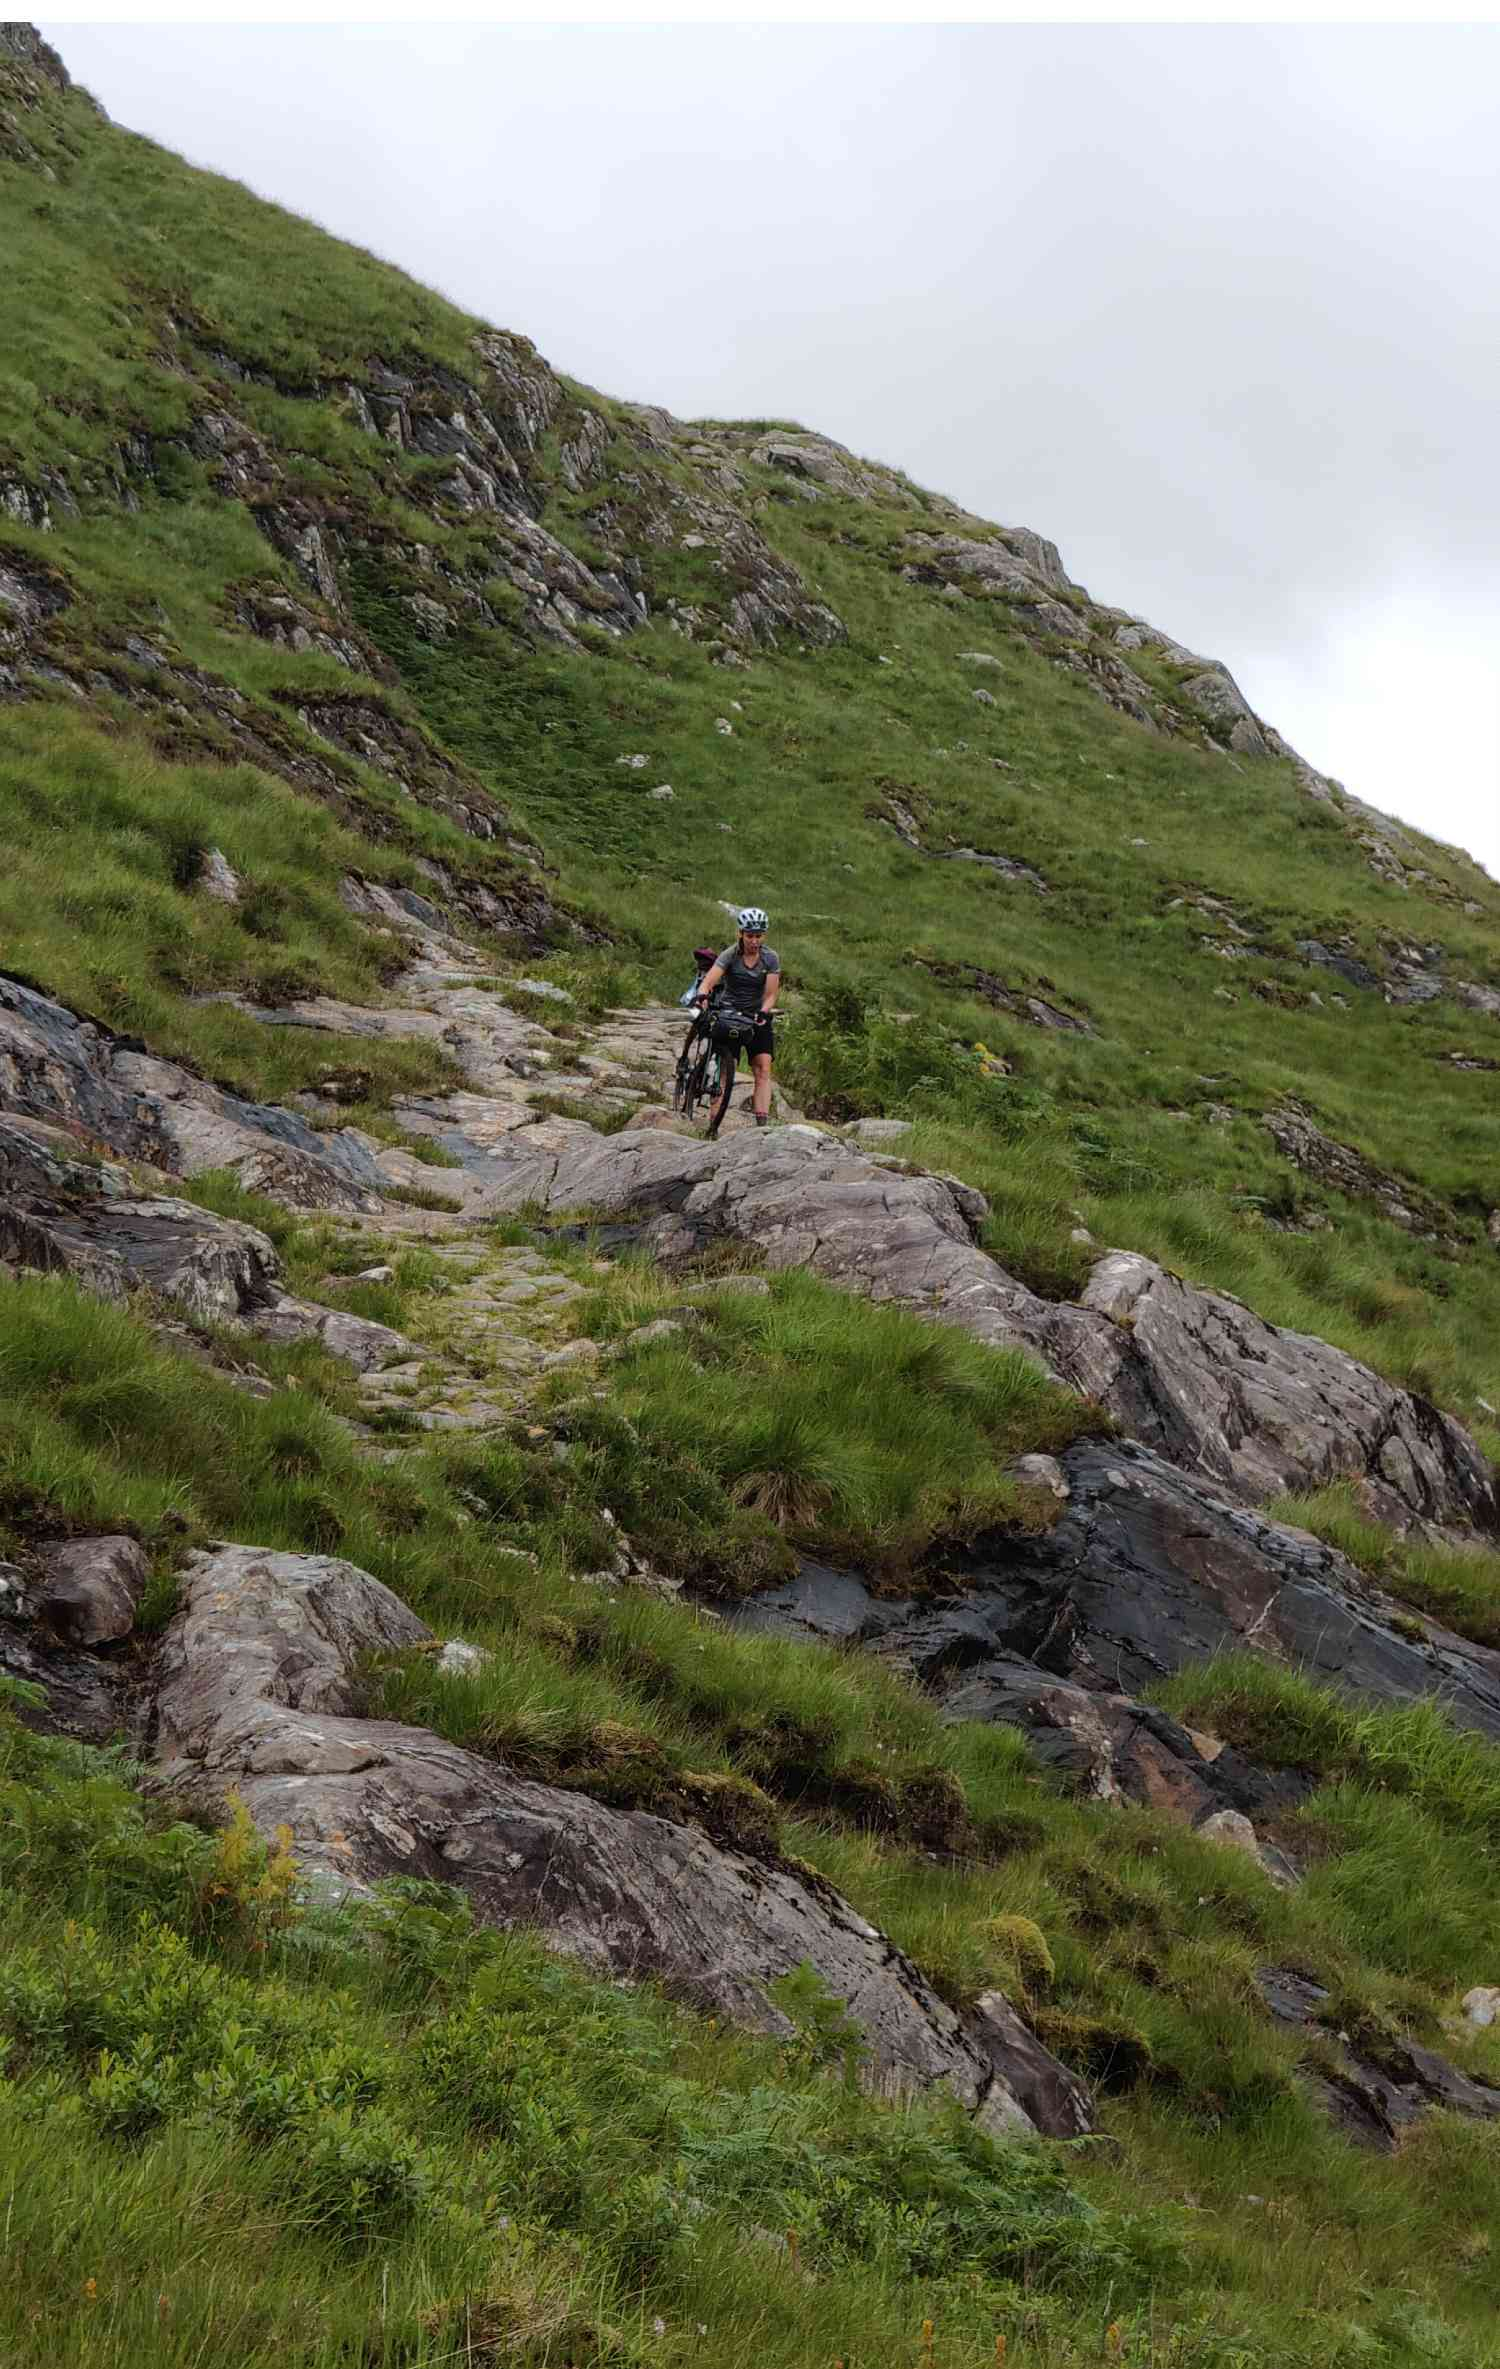 A lost cyclist hikes down a mountainside with her bike